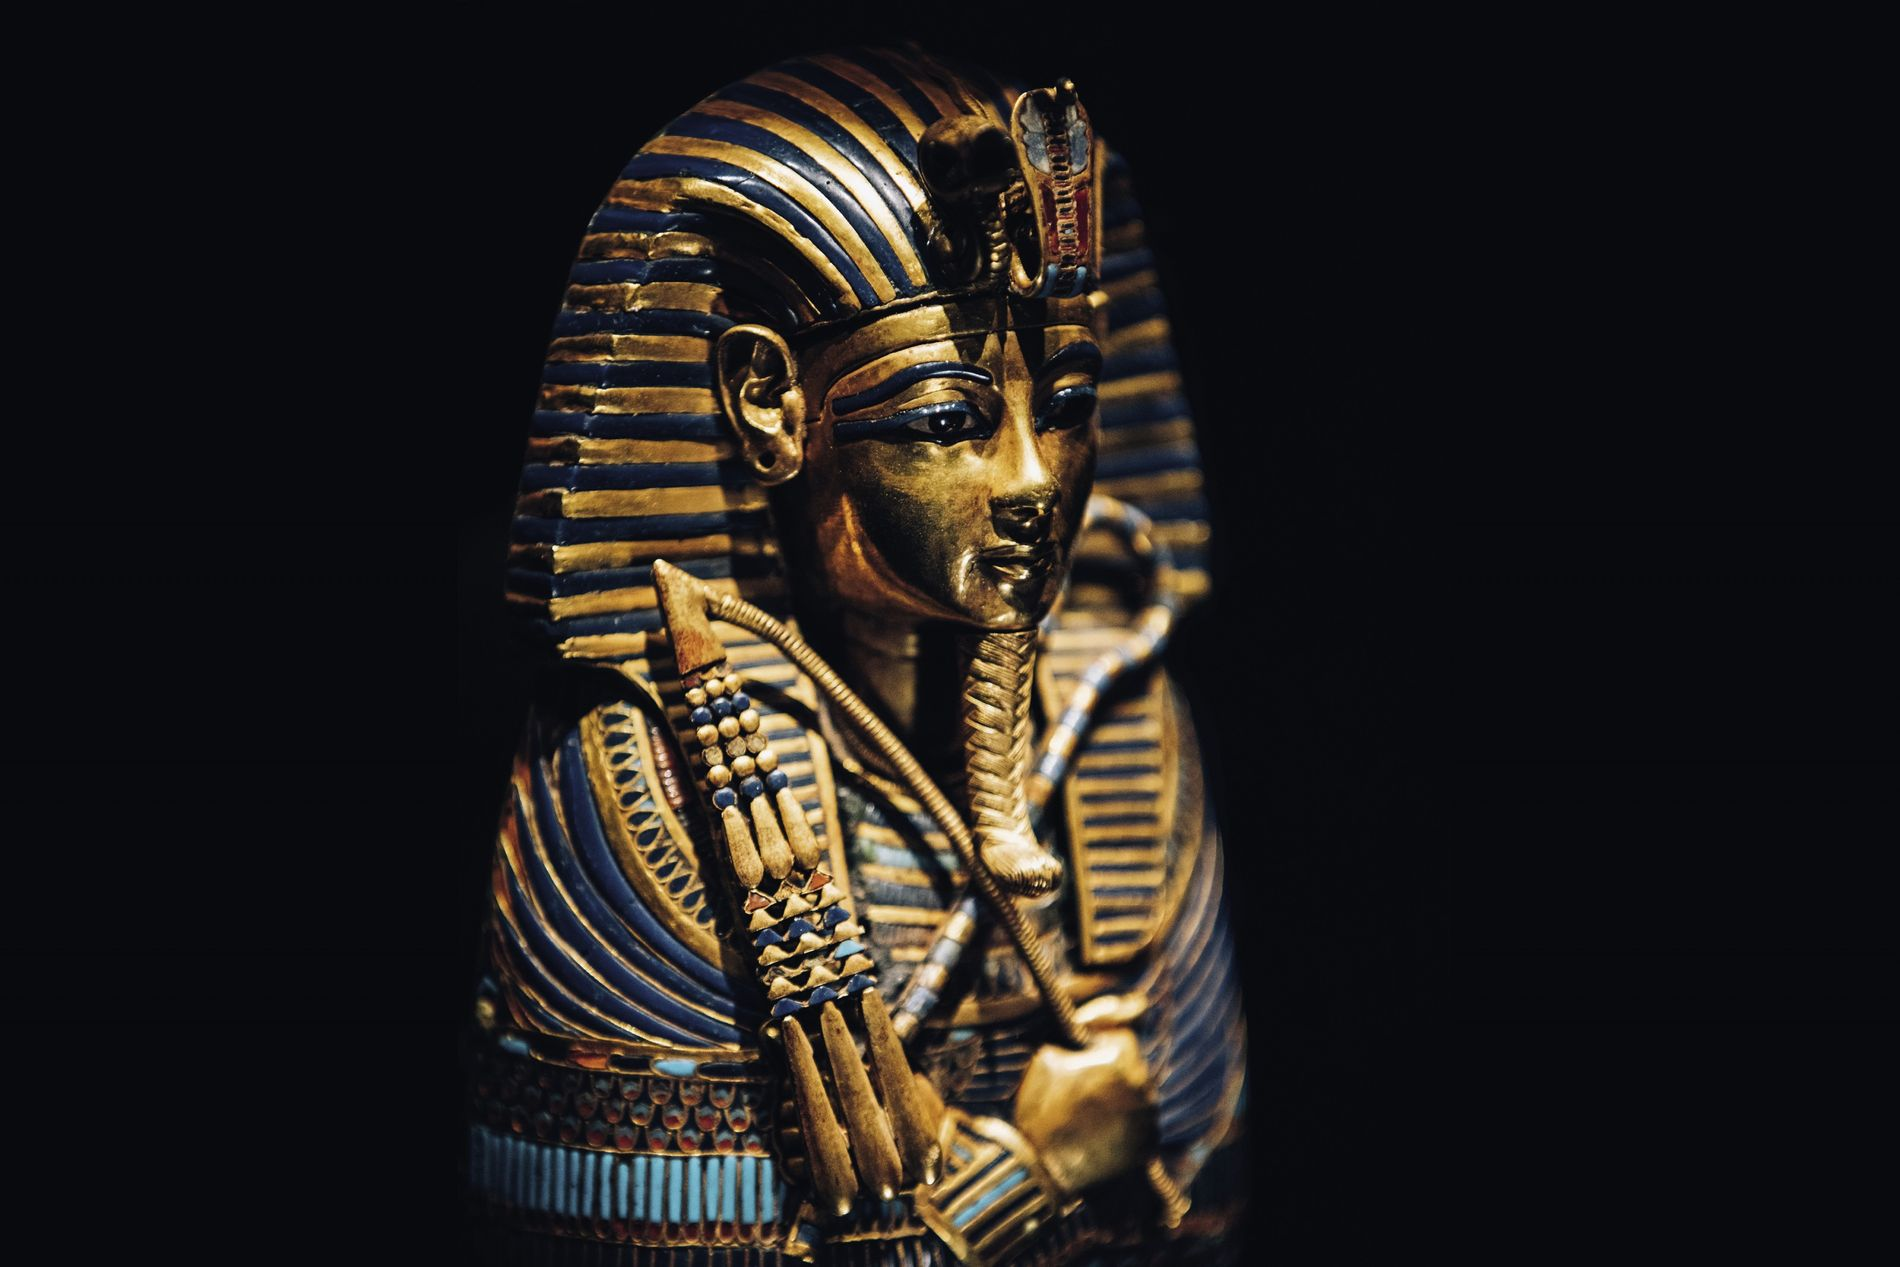 The Canopic Coffinette of Tutankhamun, one of the 150 ancient marvels featuring in the upcoming Tutankhamun: Treasures of the Golden Pharaoh exhibition, presented by Viking Cruises.